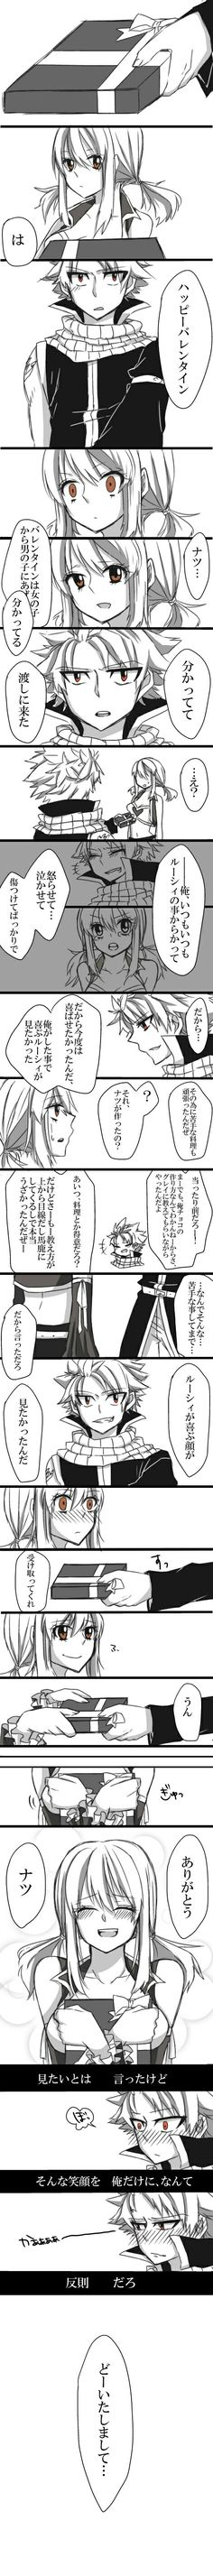 Fairy Tail : Natsu x Lucy Fairy Tail Natsu And Lucy, Fairy Tail Manga, Anime Fairy, Laxus Dreyar, Zeref, Fariy Tail, Fairy Tail Couples, Fairy Tail Ships, Love Fairy